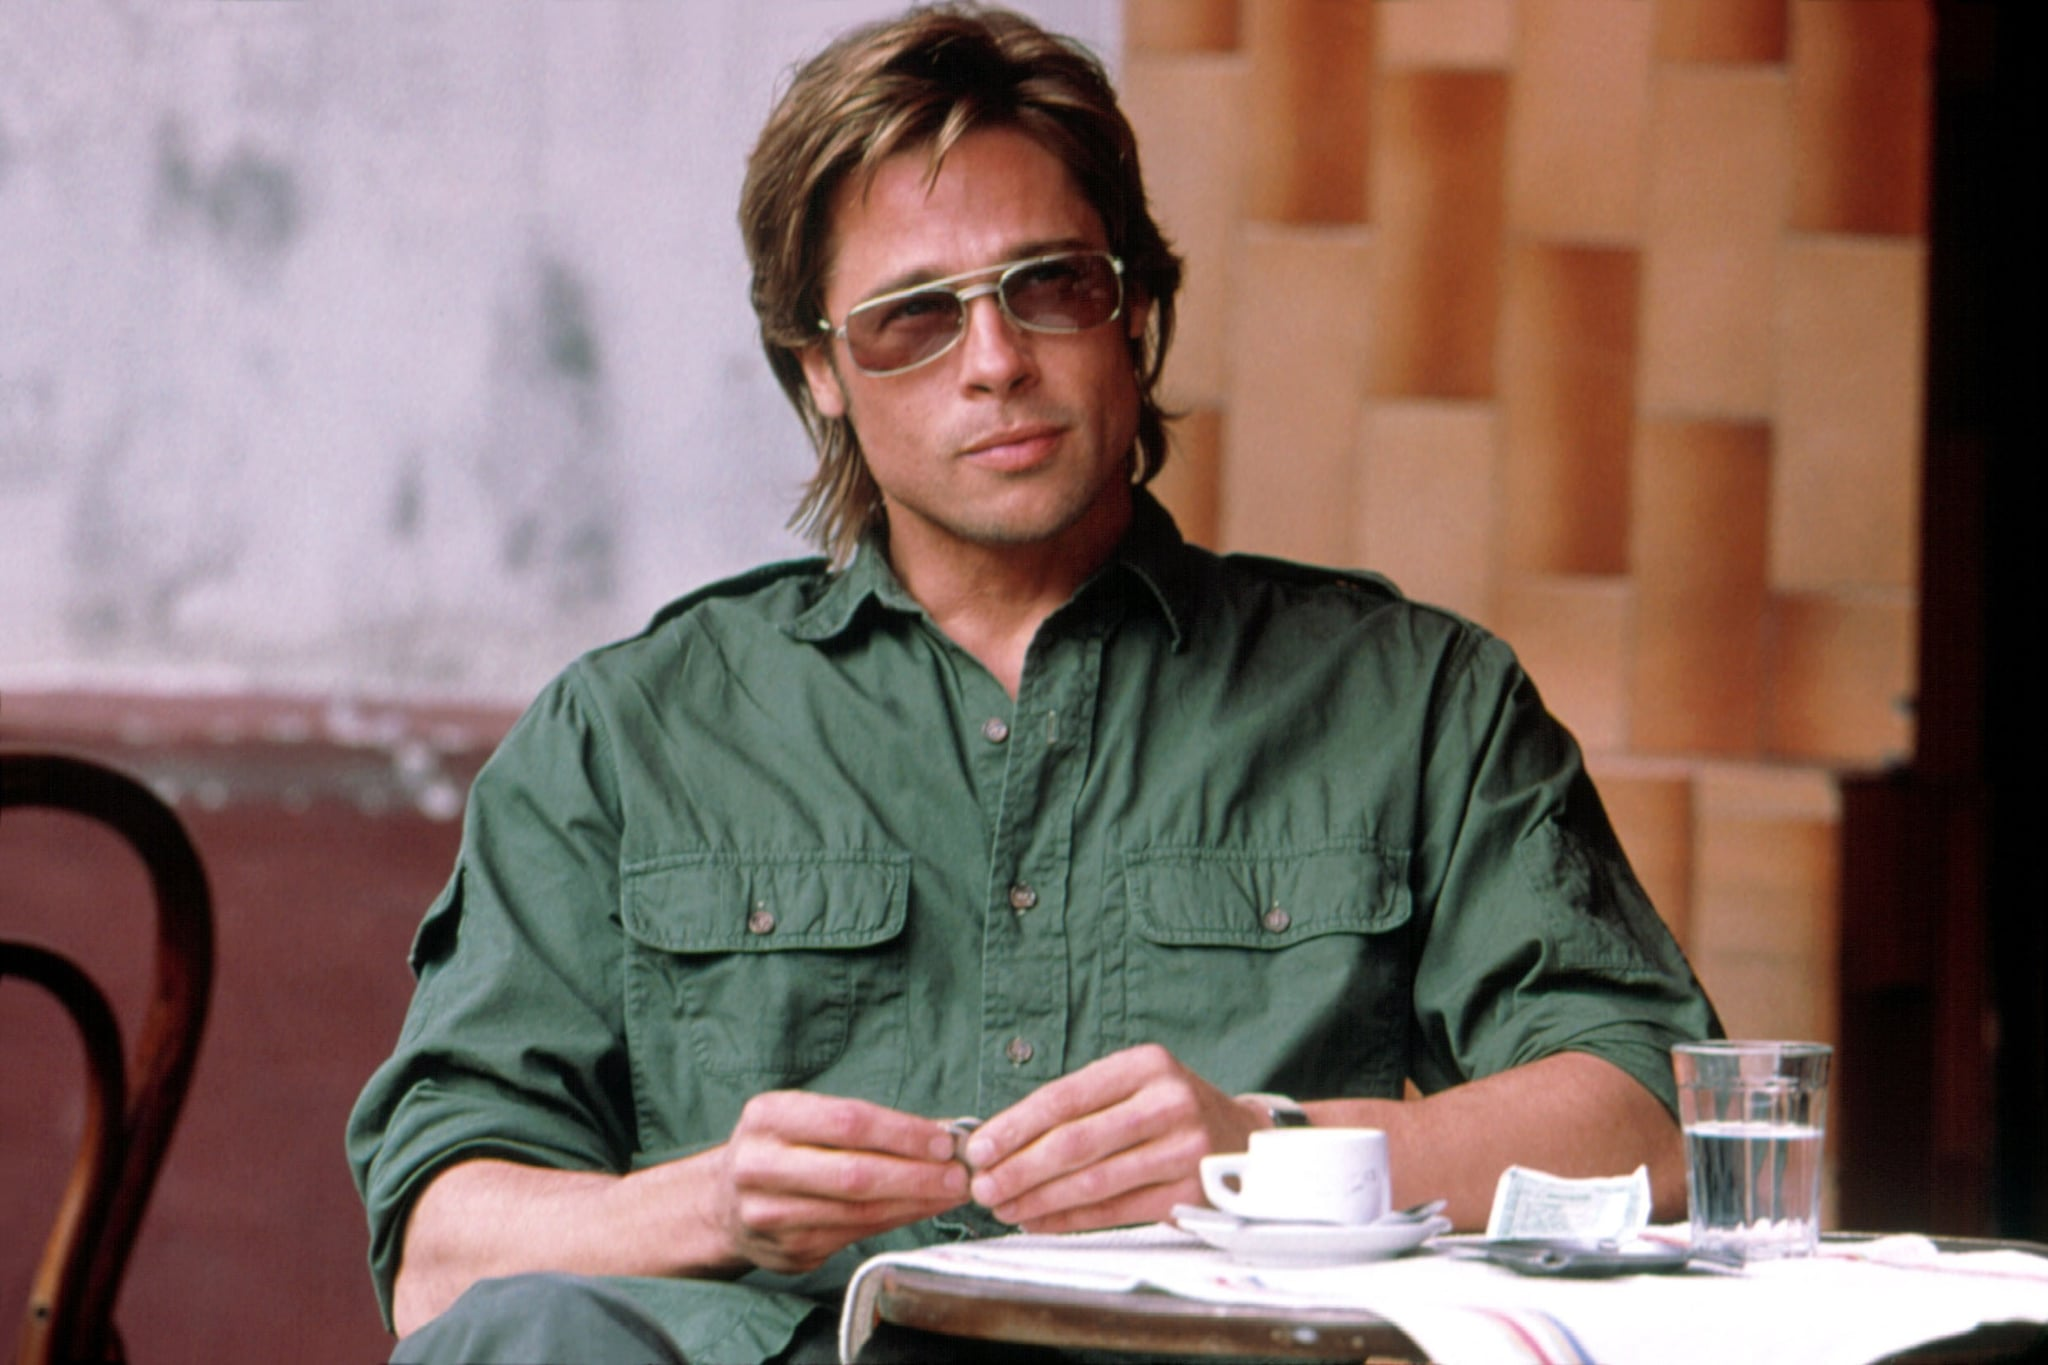 Spy Game 2001 Brad Pitt Has Aged Like A Fine Wine On The Big Screen Popsugar Entertainment Photo 22